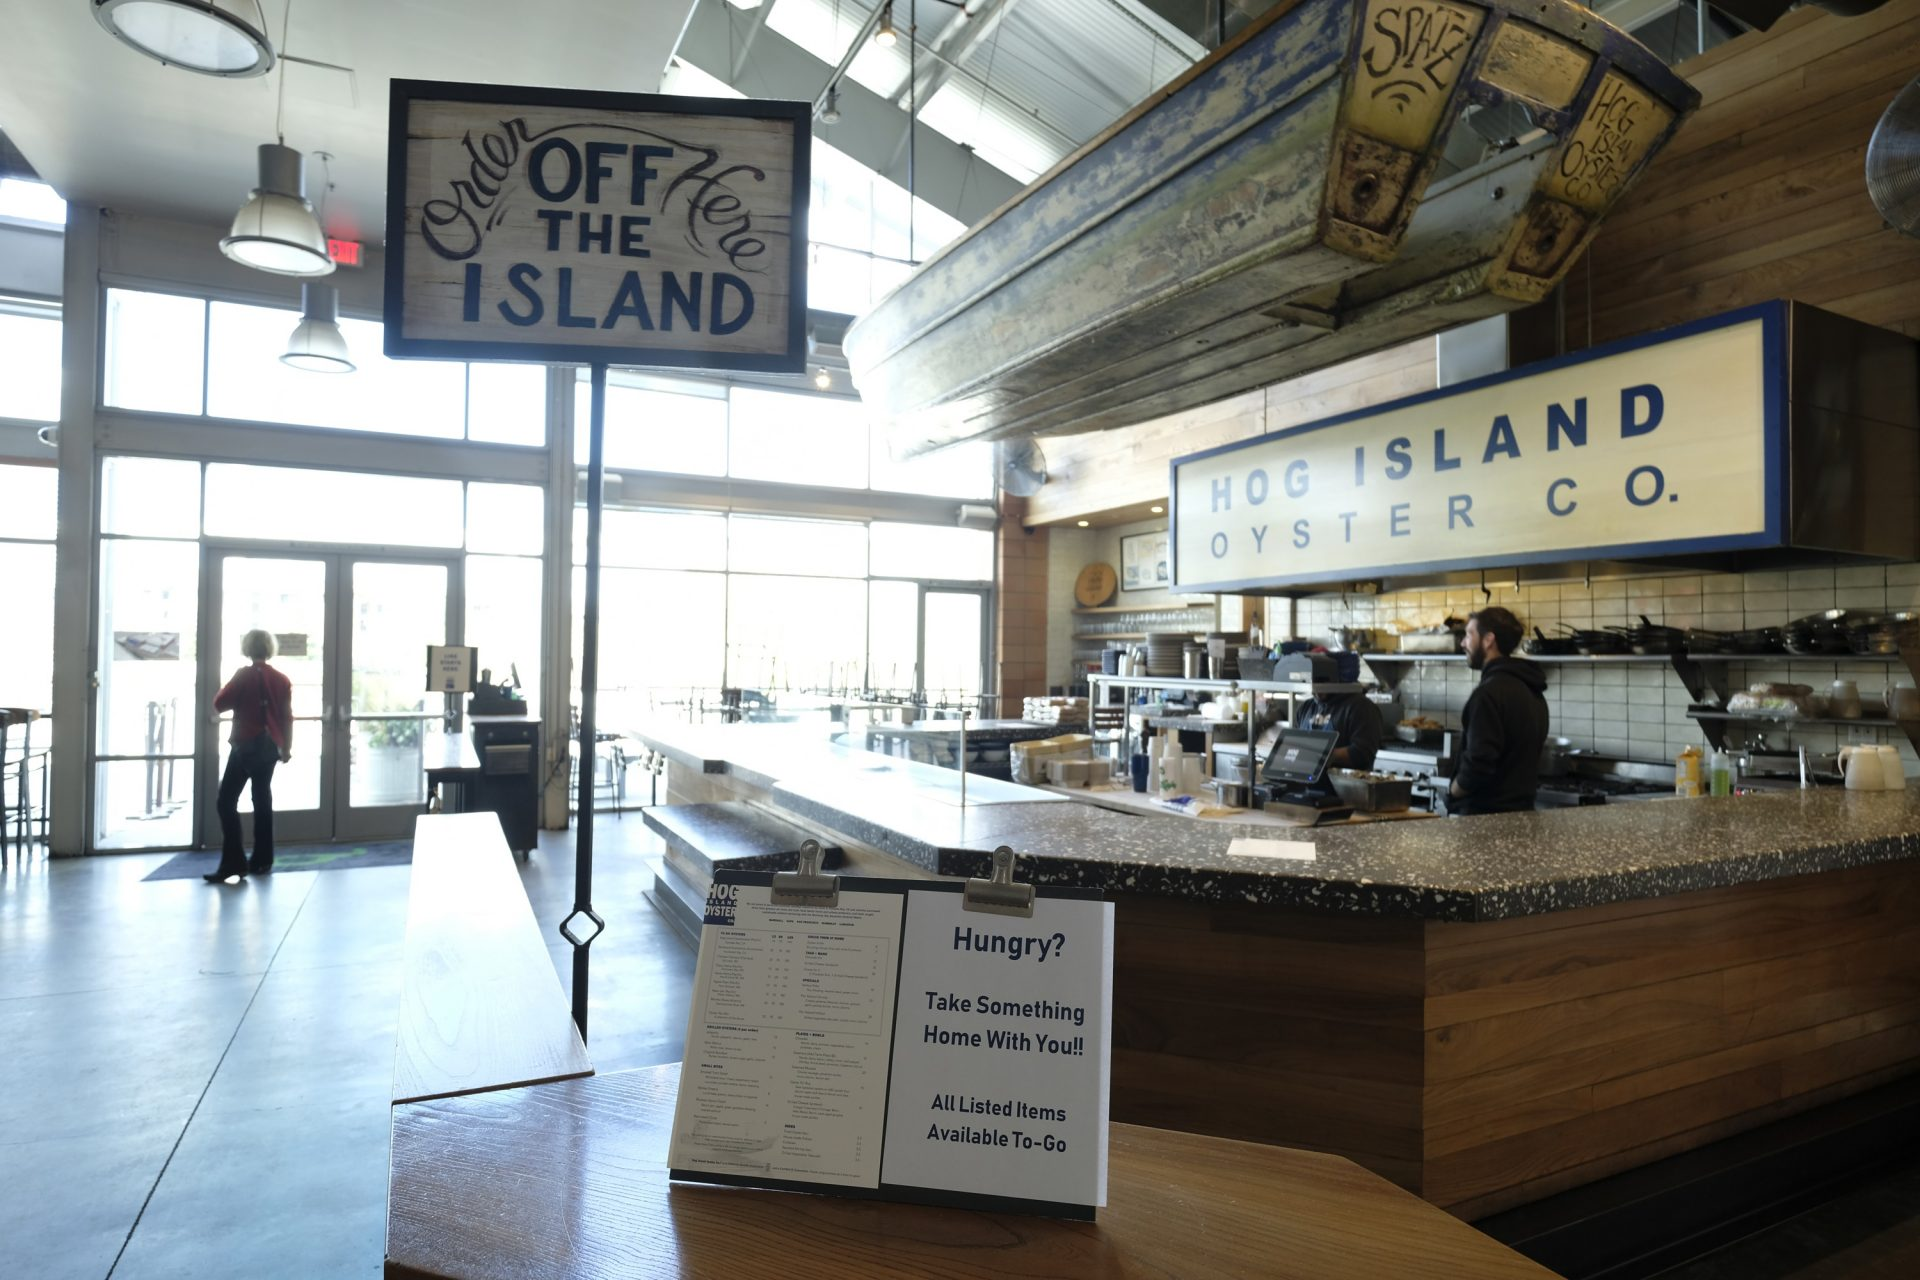 The popular Hog Island Co. oyster bar sits empty at the Oxbow Public Market, but remains open for takeout orders only Thursday, March 19, 2020, in Napa, Calif. As worries about the spread of the coronavirus confine millions of Californians to their homes, concern is growing about those who have no homes in which to shelter